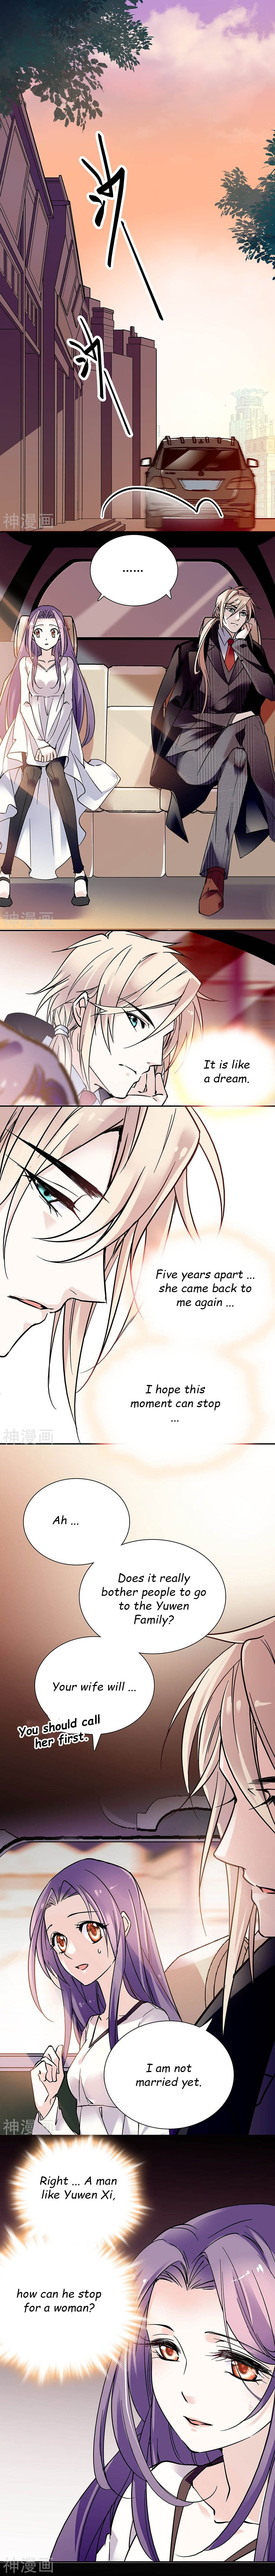 Love Is Full of Thorns - chapter 74 - #1